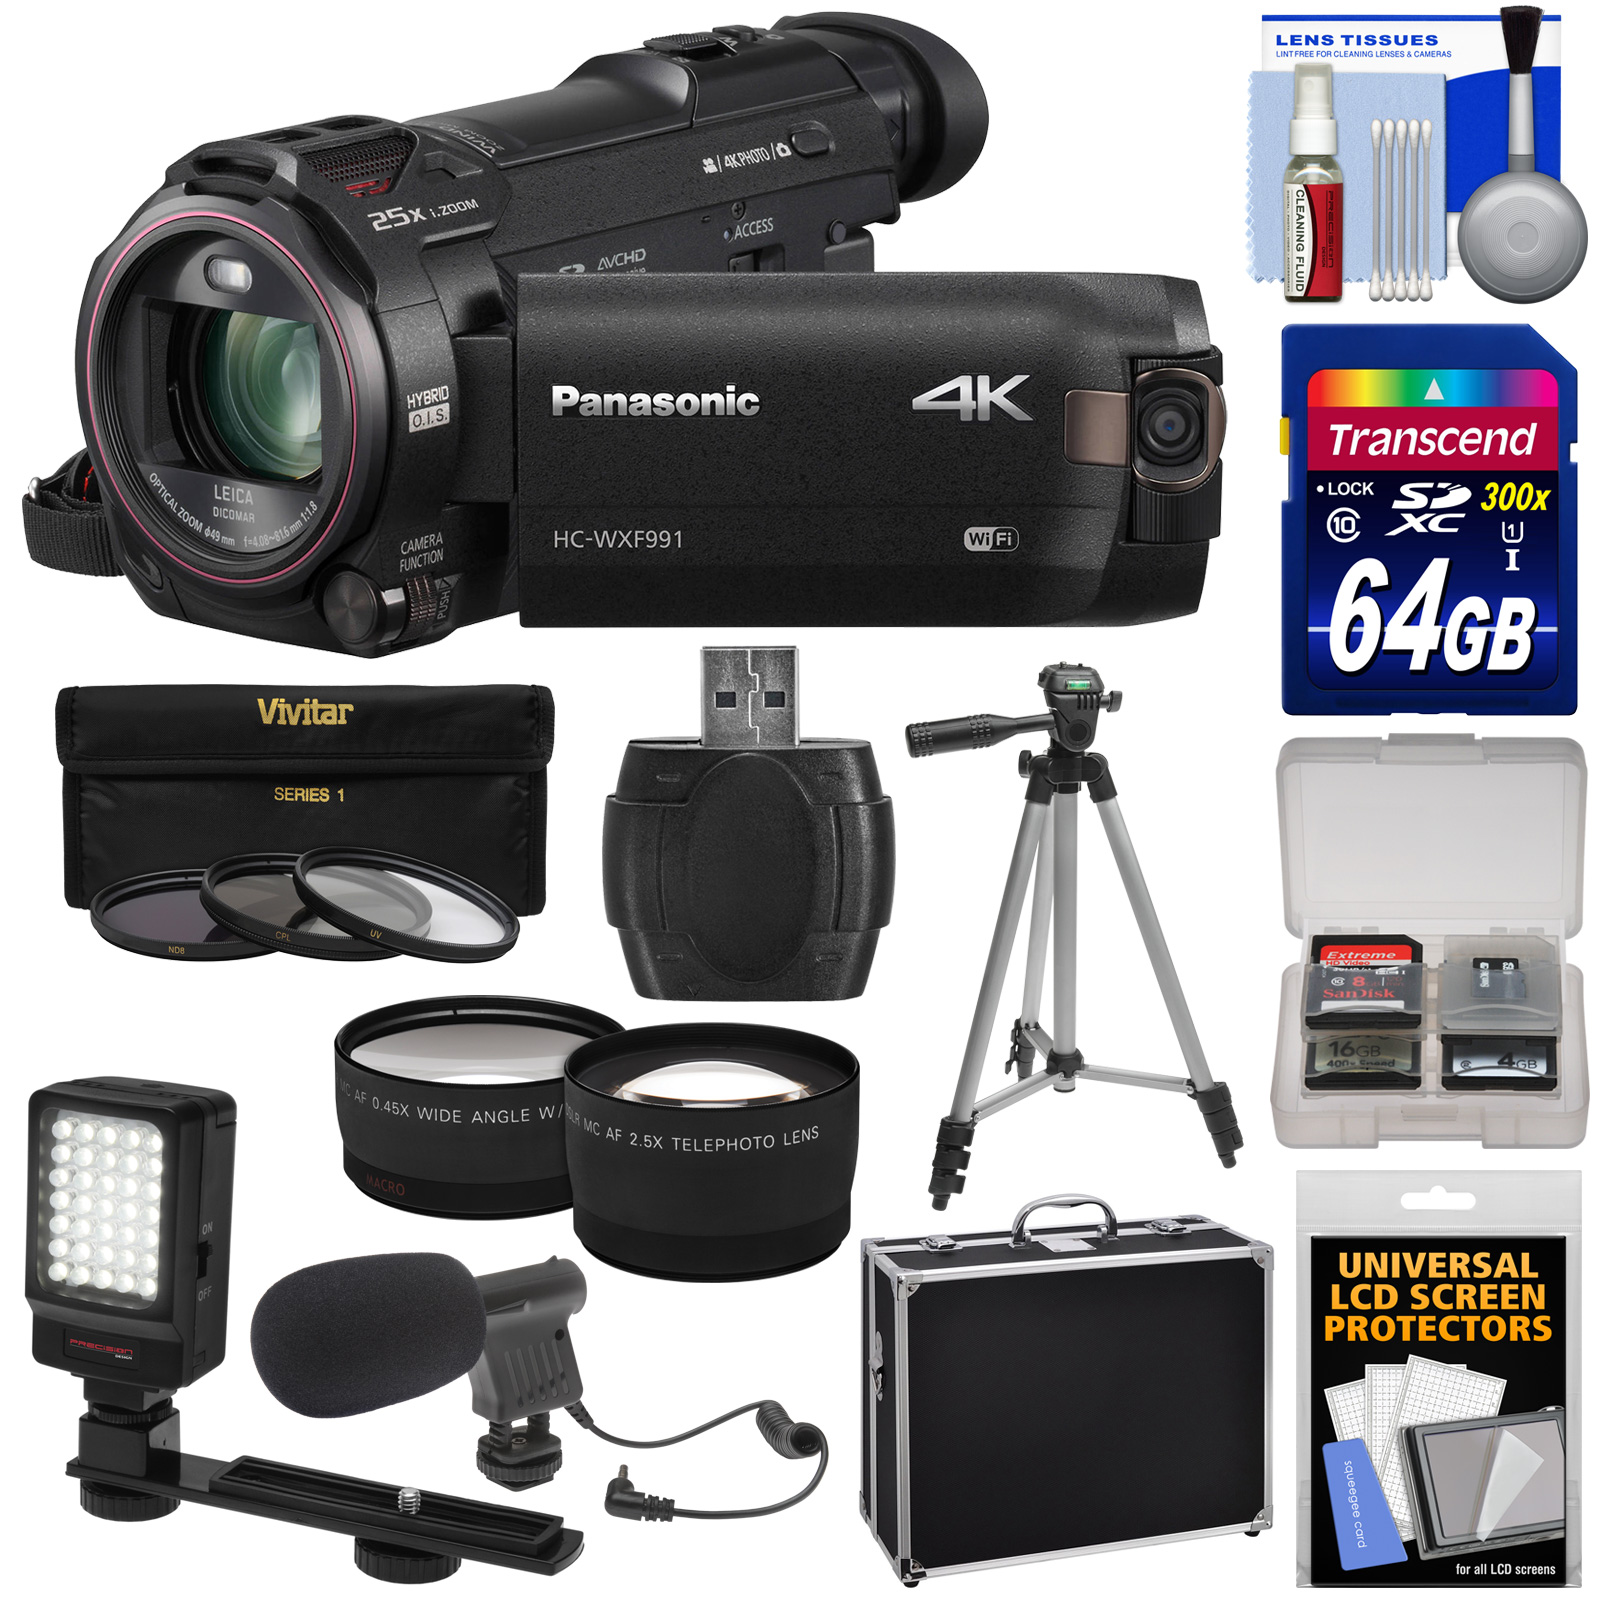 Panasonic HC-WXF991 Wi-Fi 4K Ultra HD Video Camera Camcorder with 64GB Card +